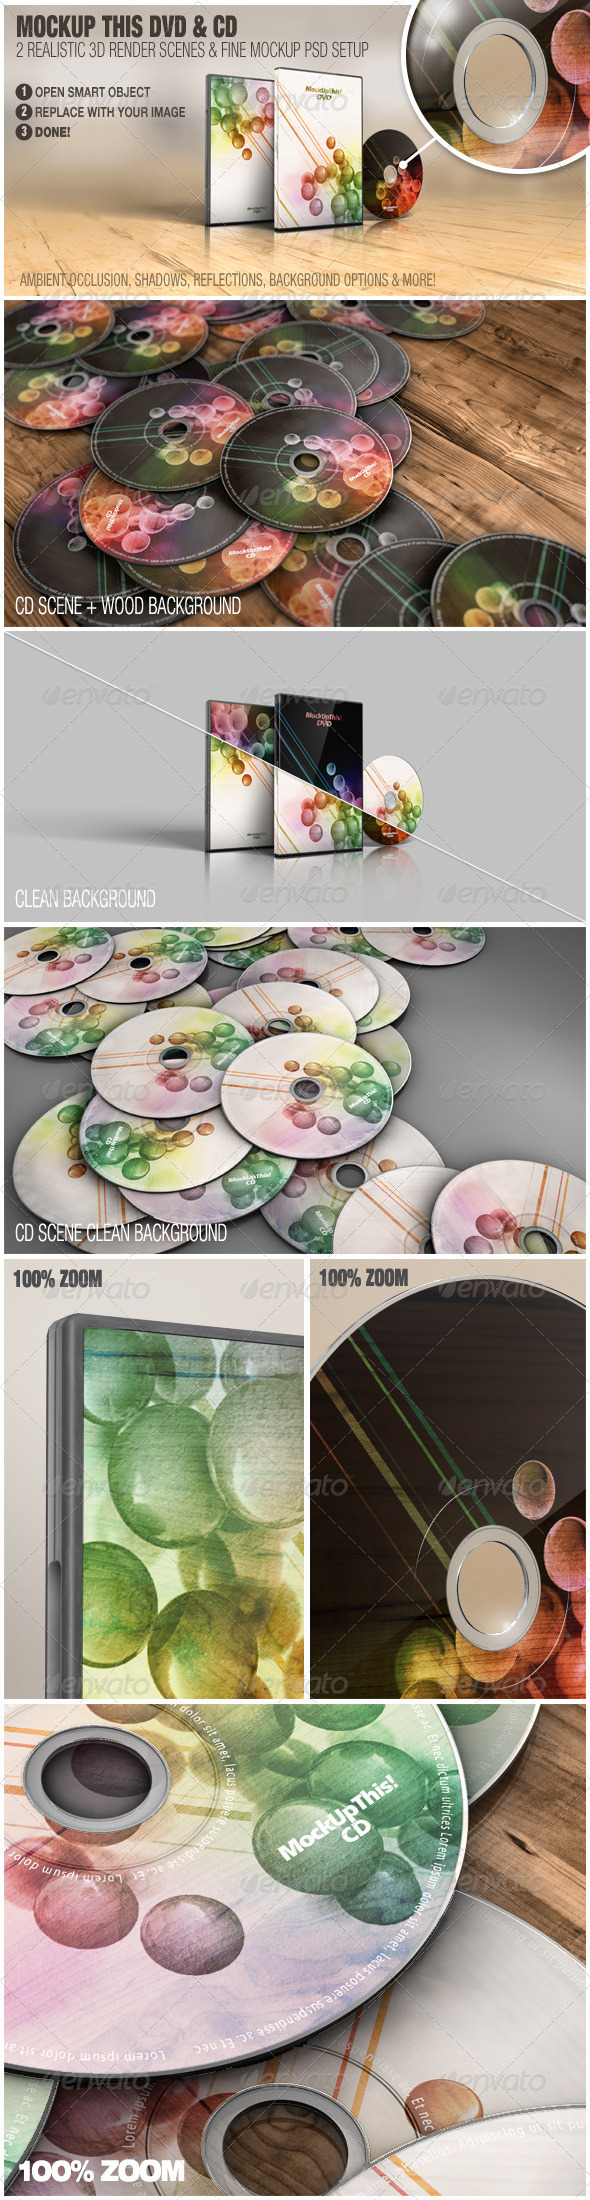 GraphicRiver Mockup This DVD and CD 3362362